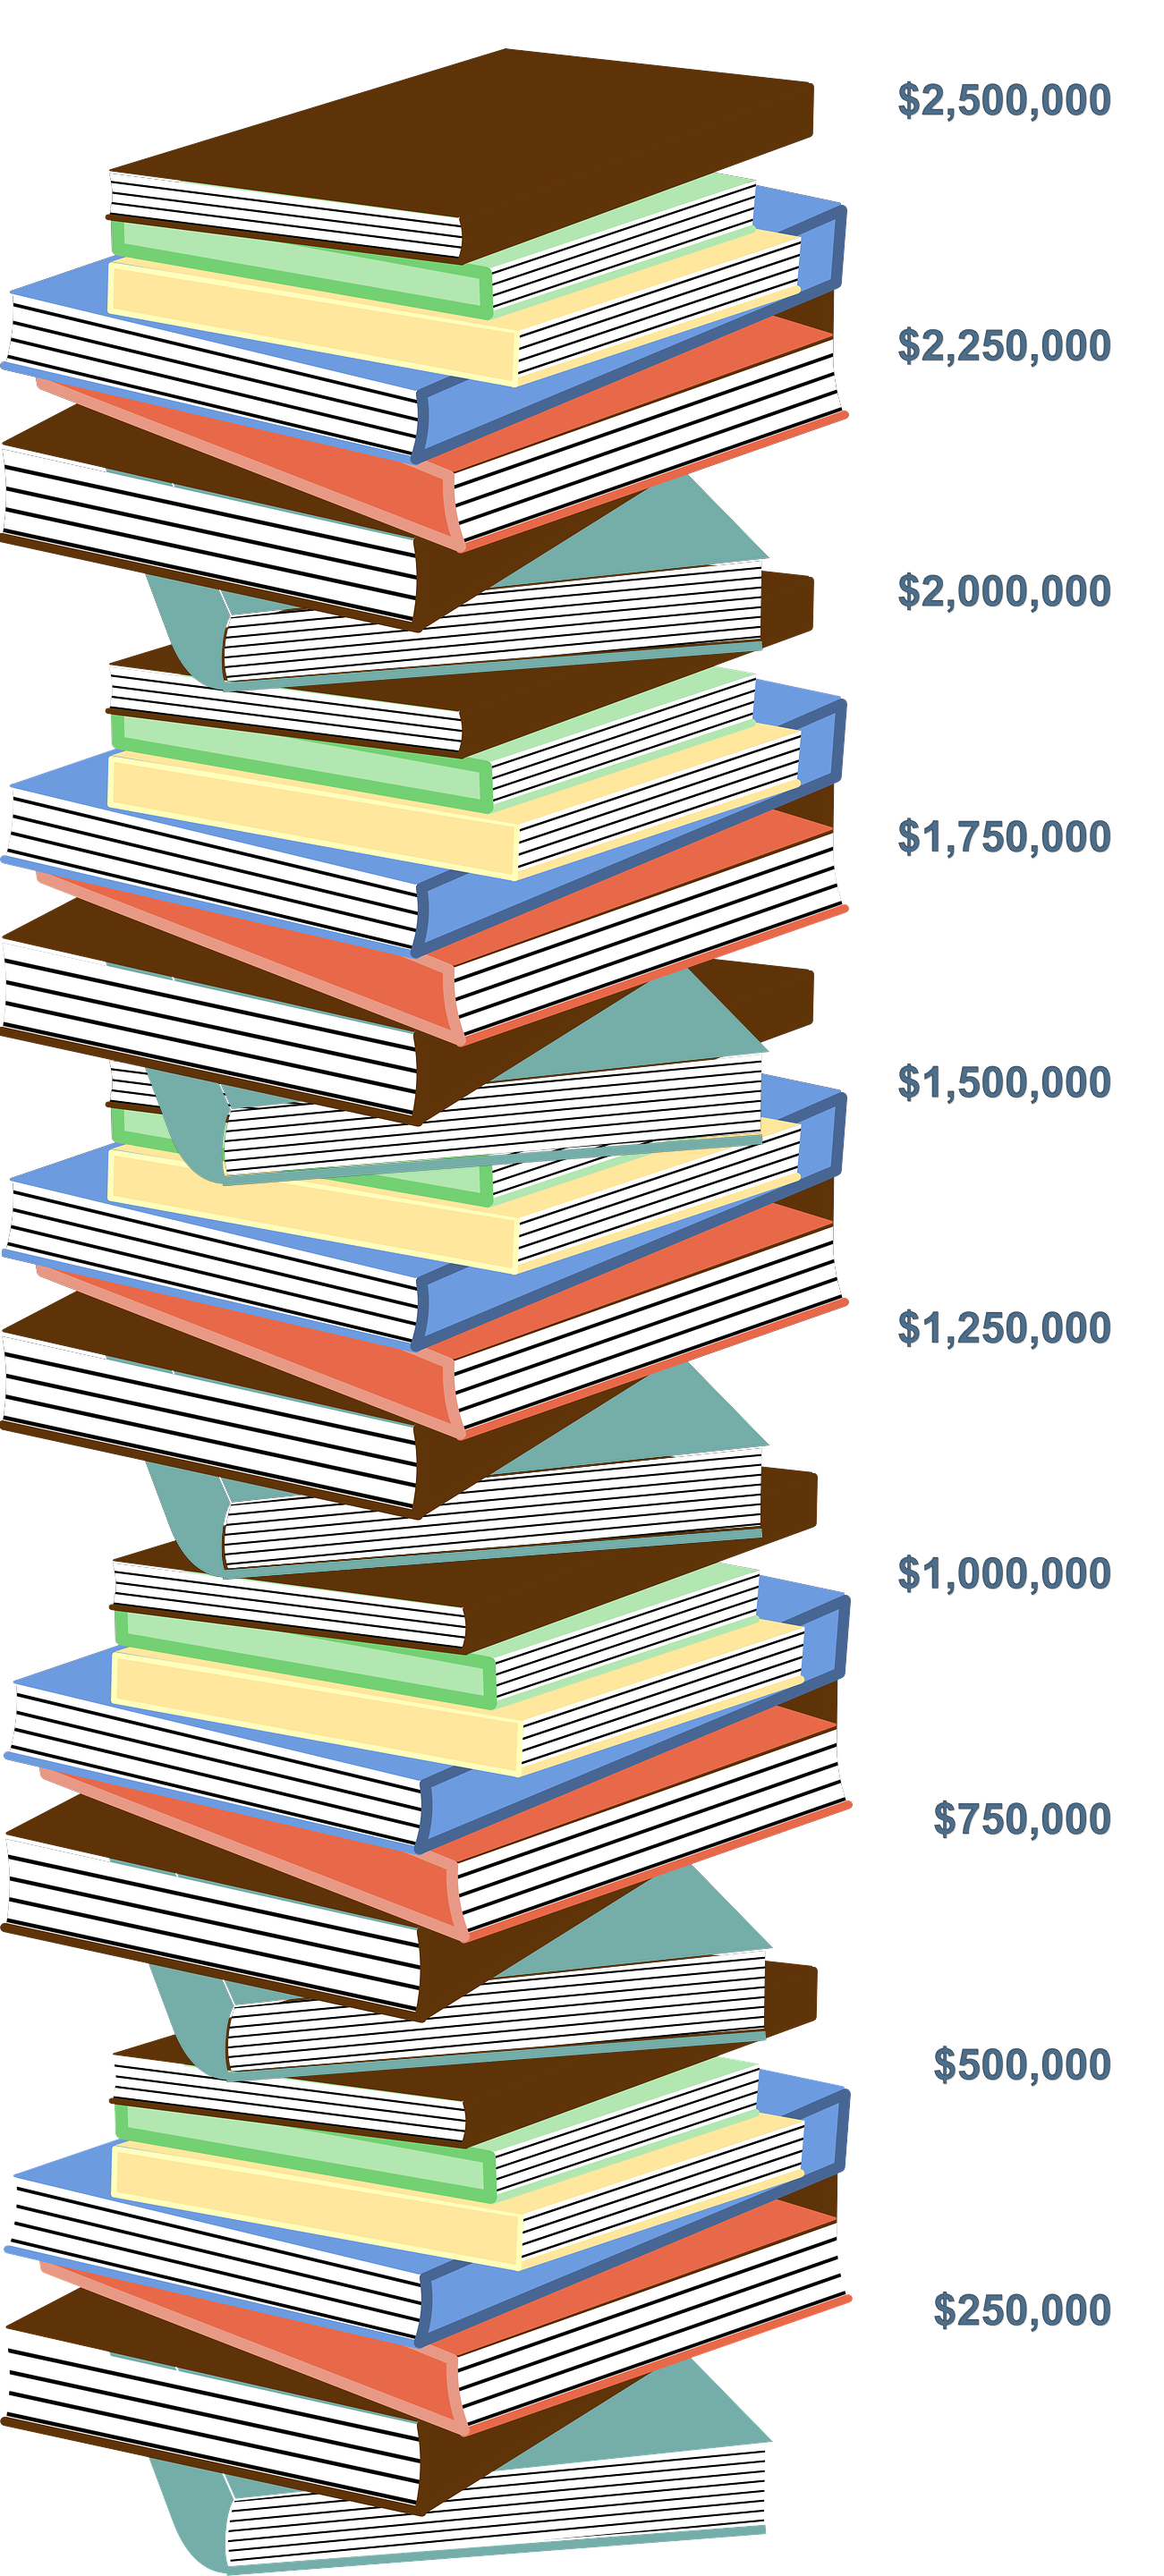 Book stack image showing final total: $2,586,180